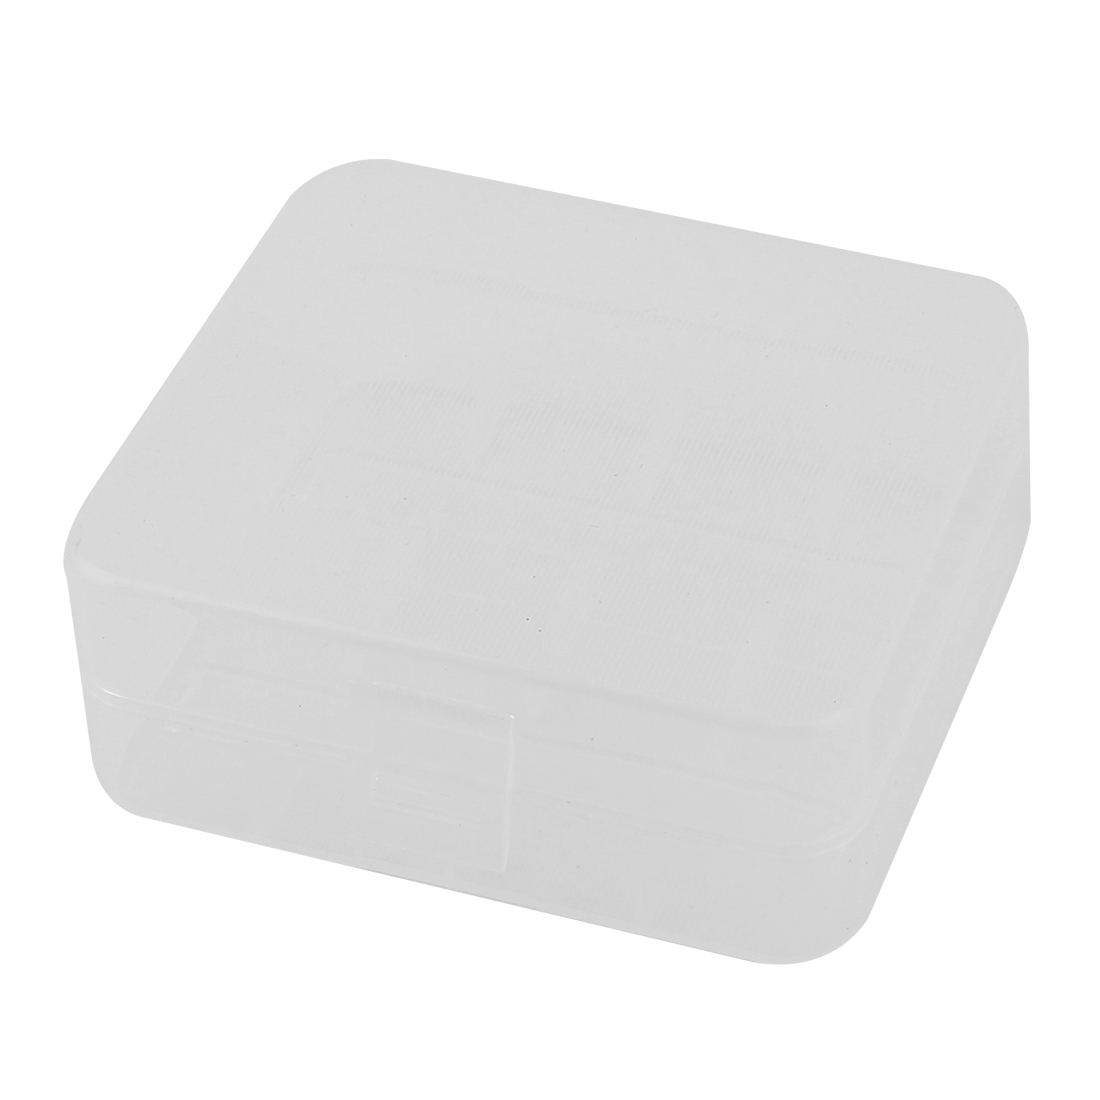 Hard Plastic Case Holder Storage Box Container for 2 x 26650 Battery